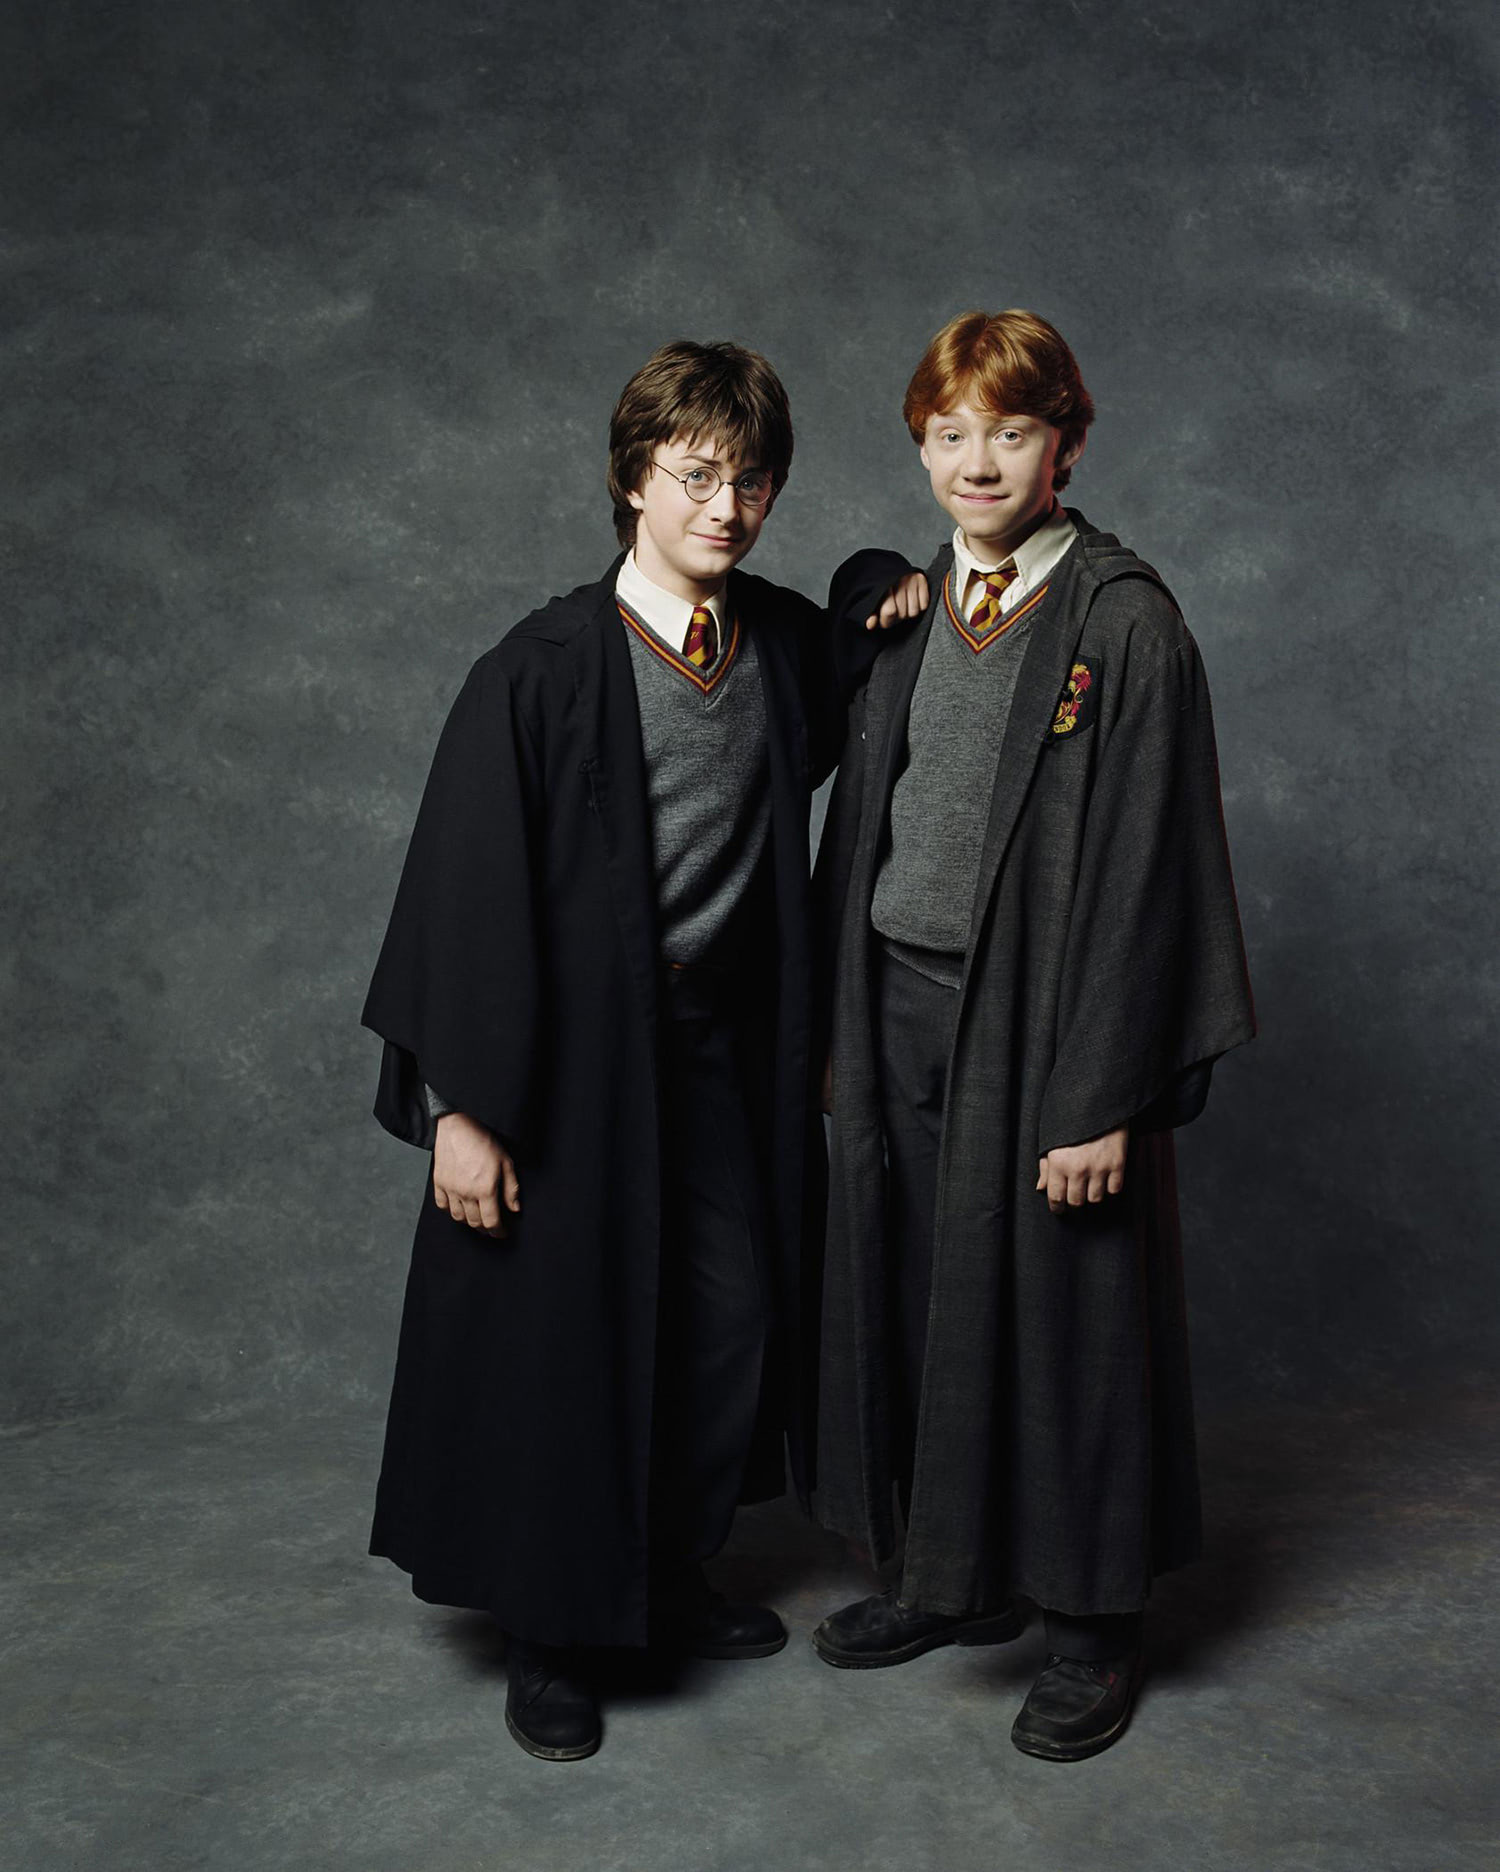 Portrait of Harry Potter and Ron Weasley